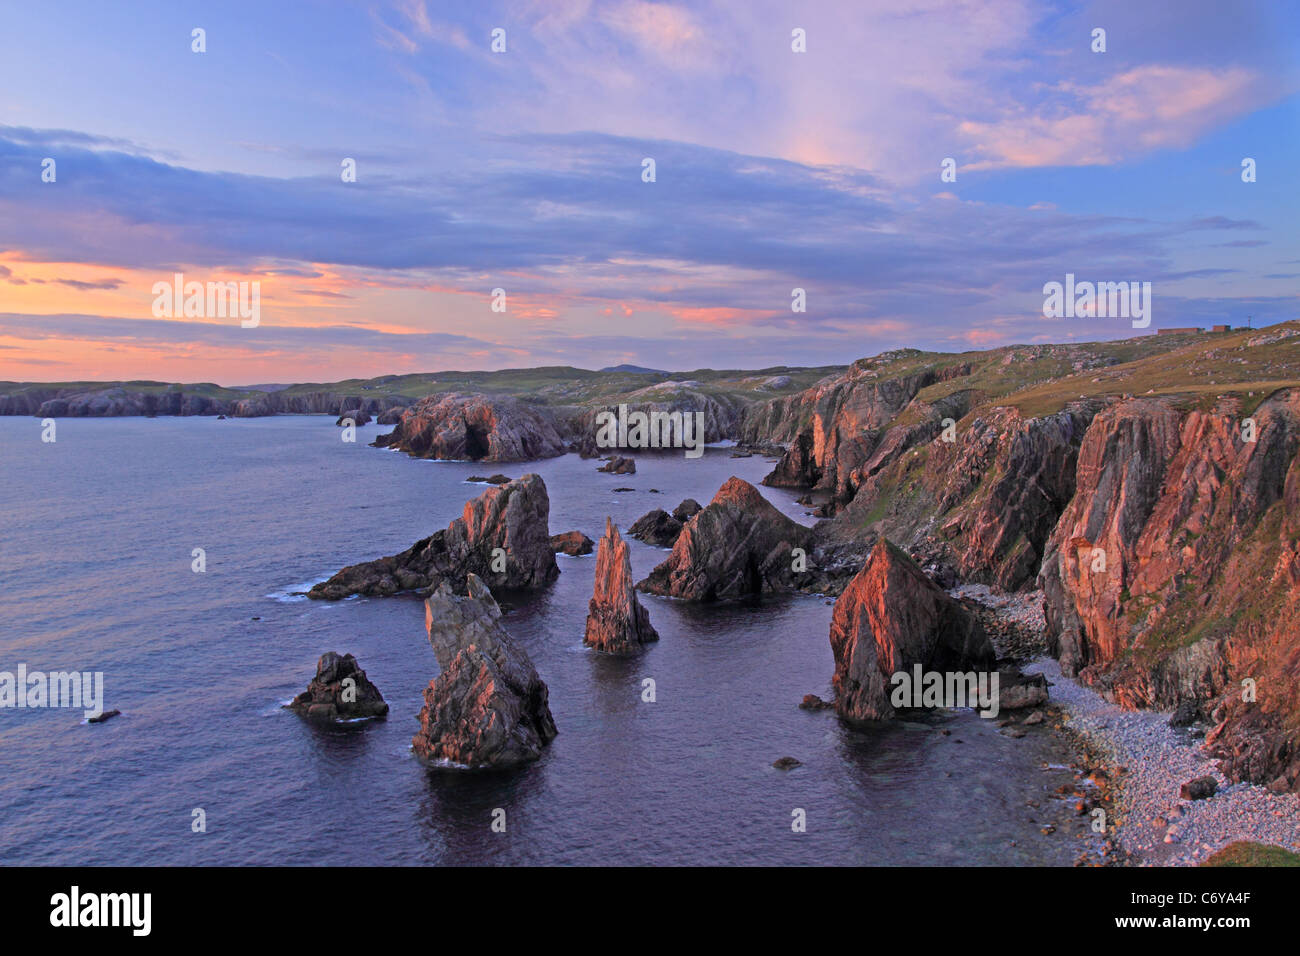 UK Scotland Outer Hebrides Isle of Lewis Mangersta sea Stacks - Stock Image